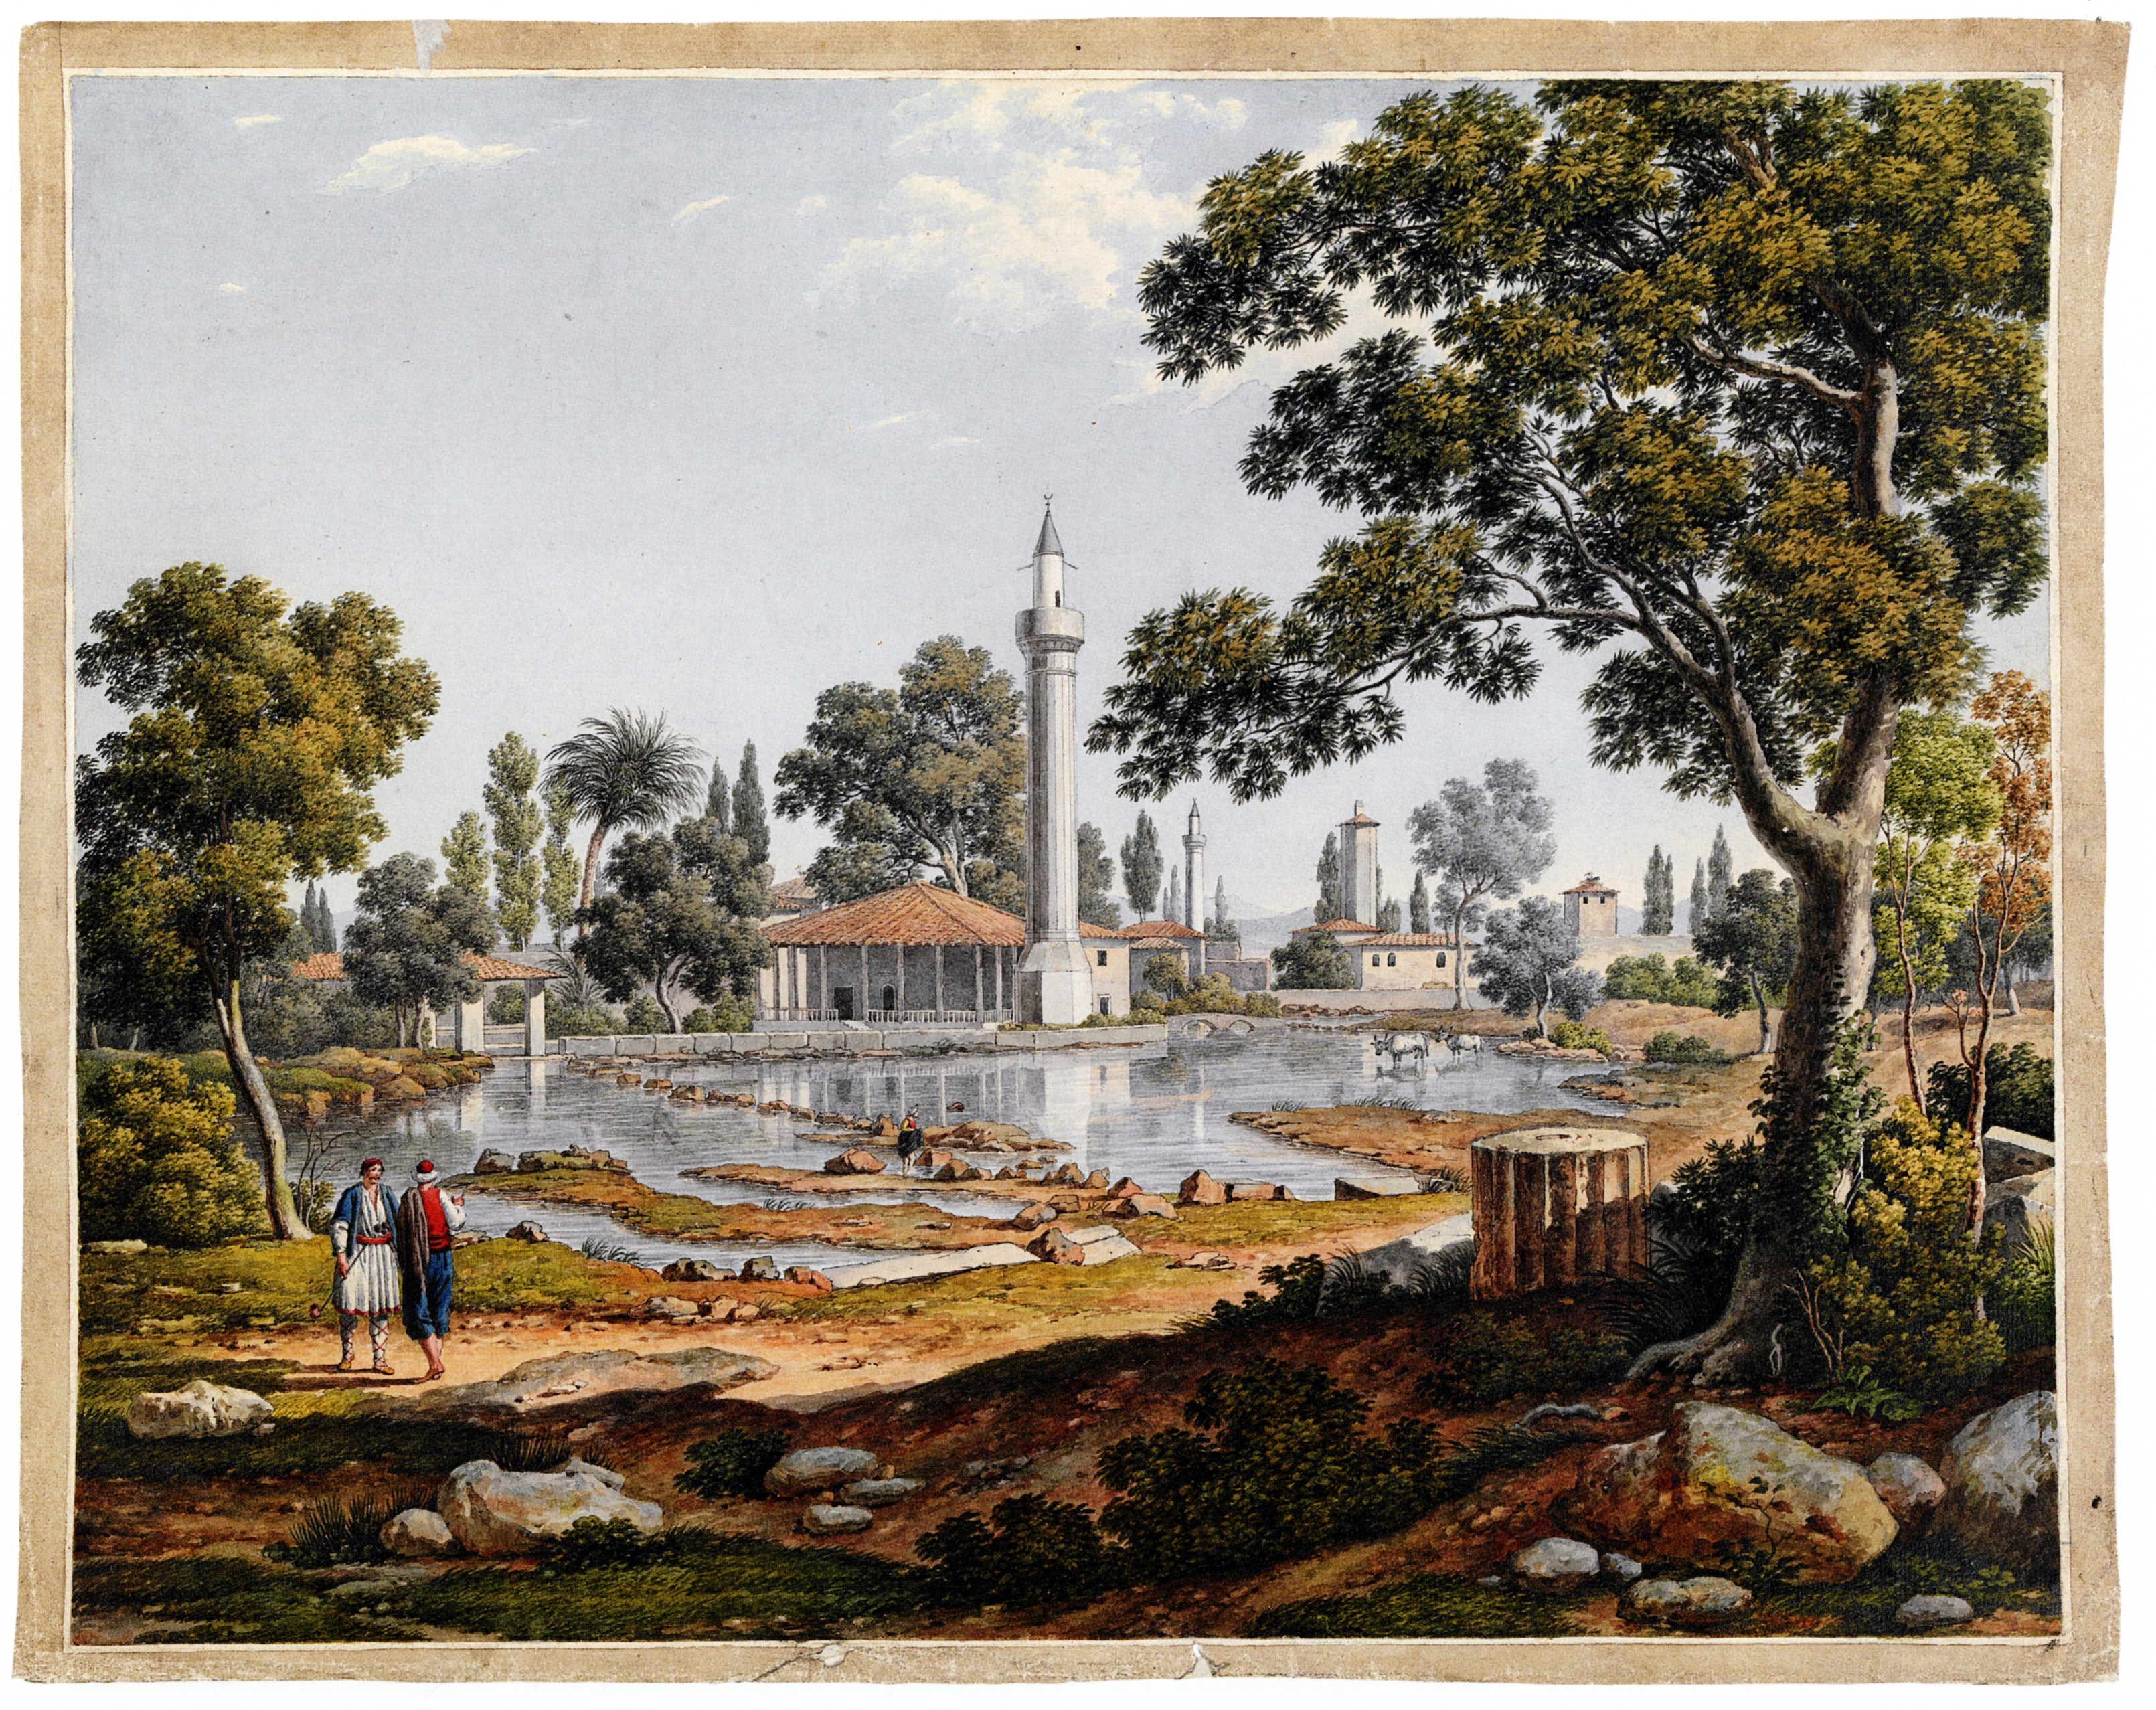 image a painting